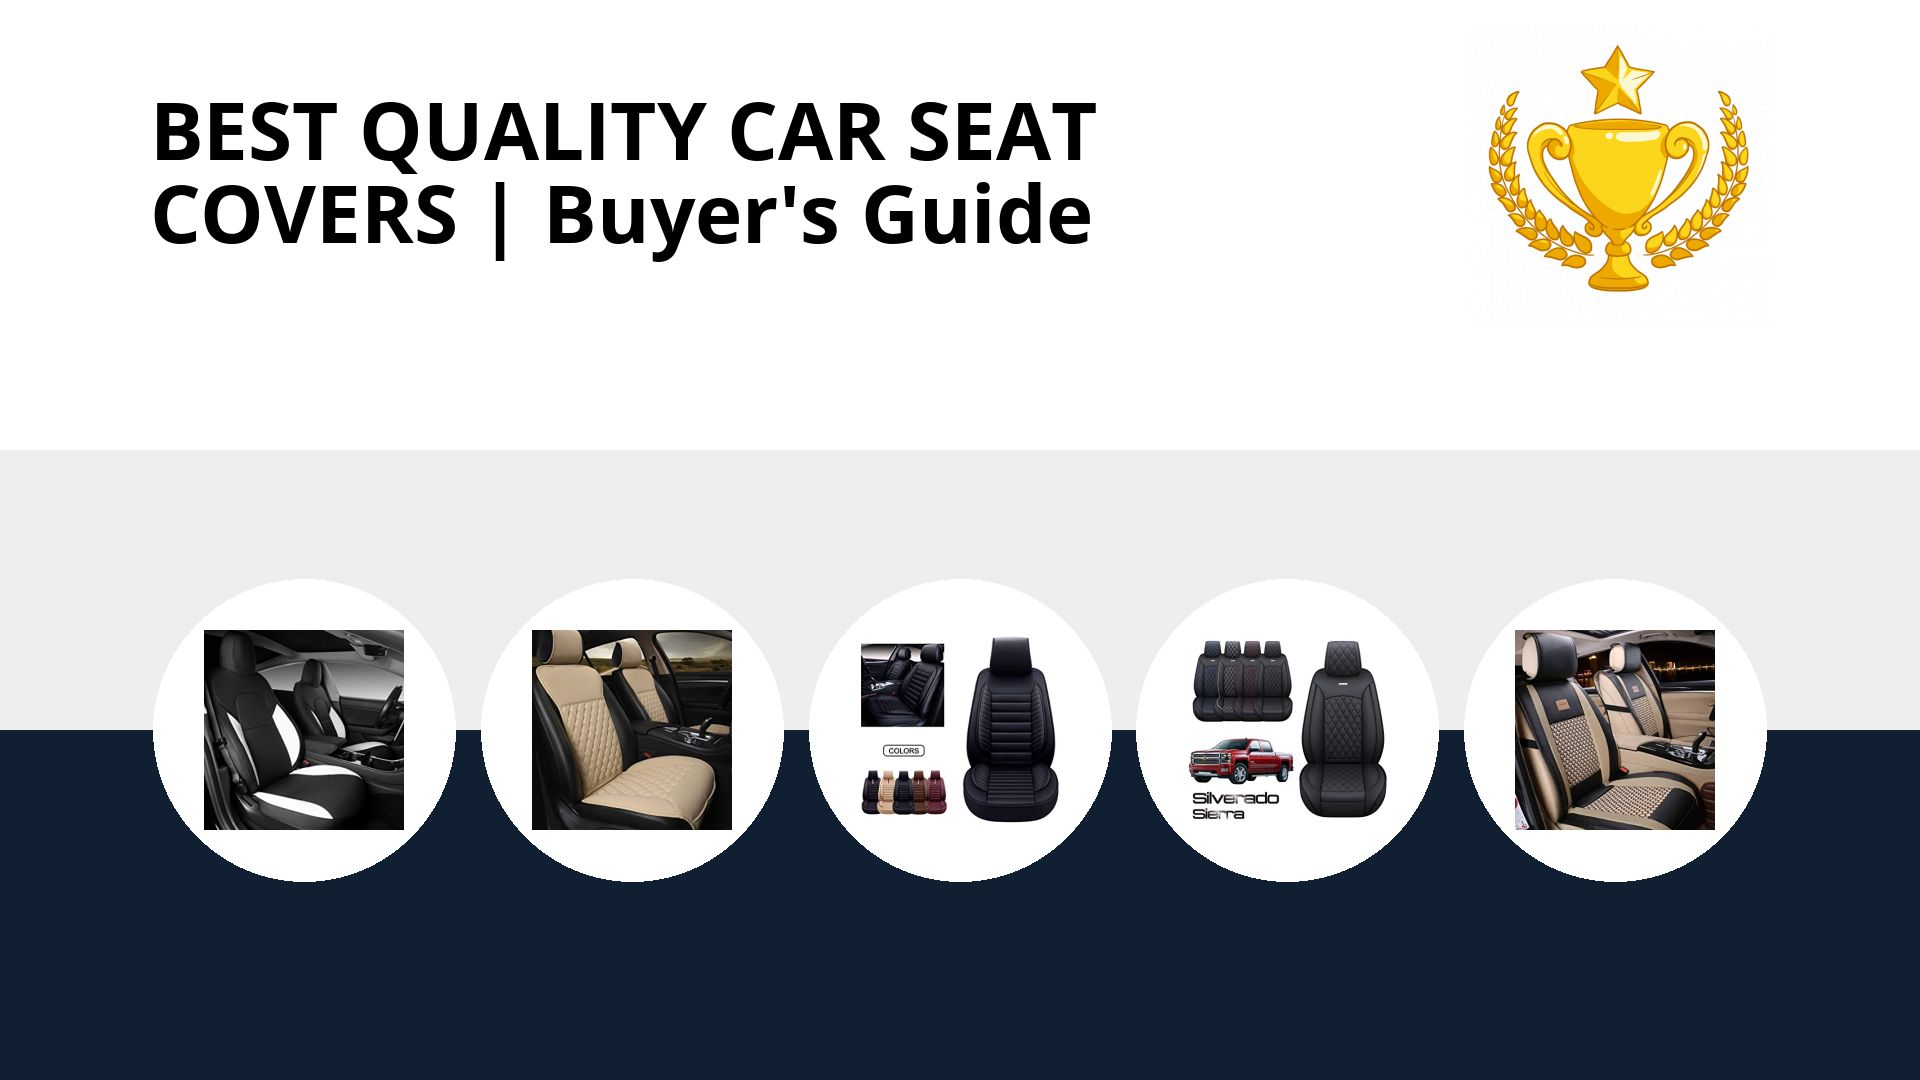 Best Quality Car Seat Covers: image